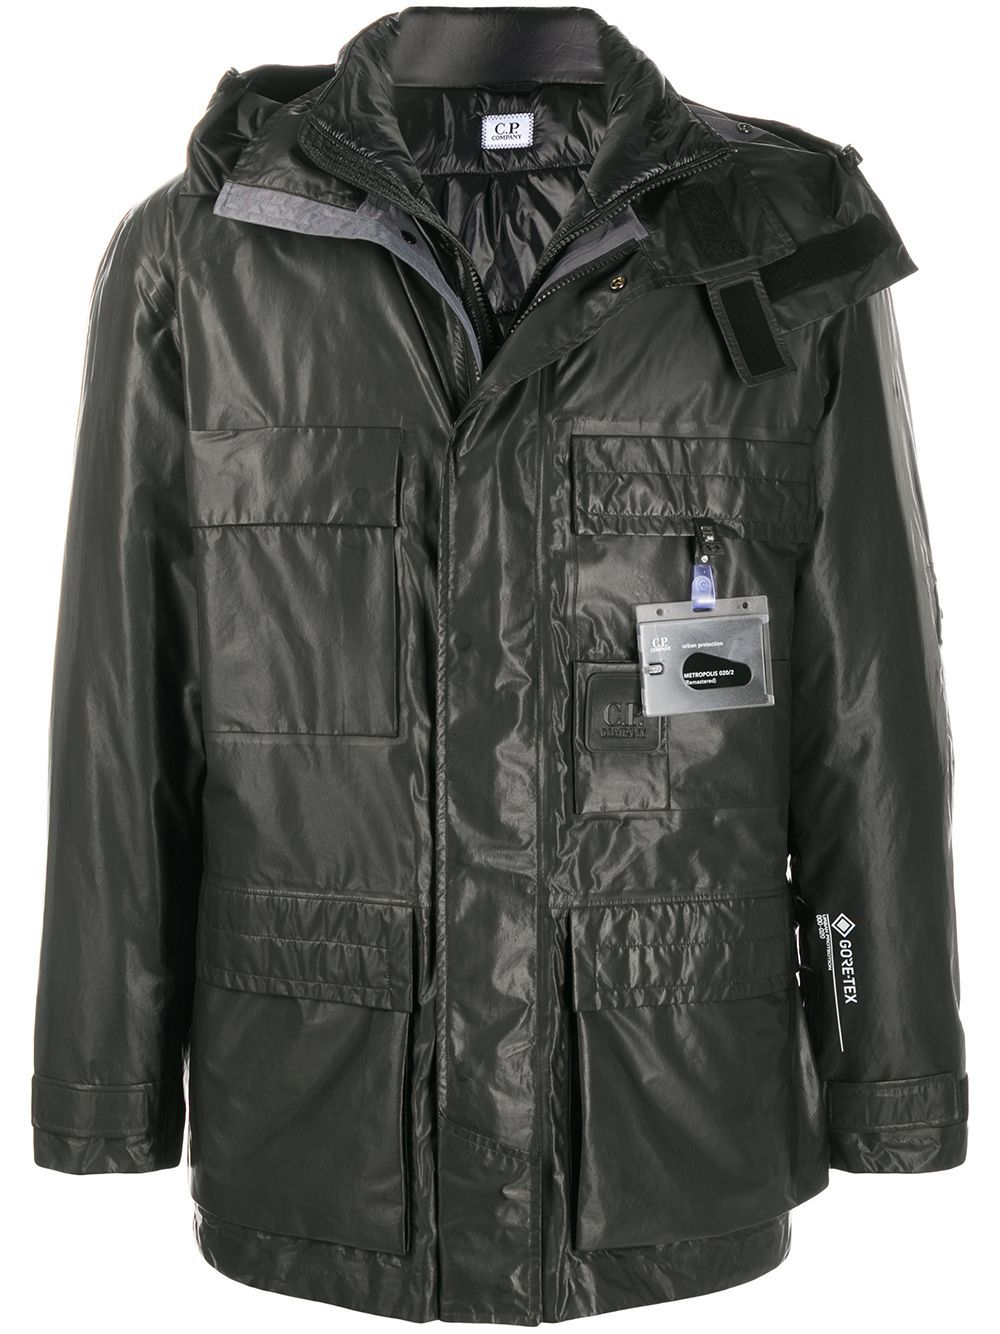 C.P COMPANY Metropolis (Remastered) Jacket Charcoal